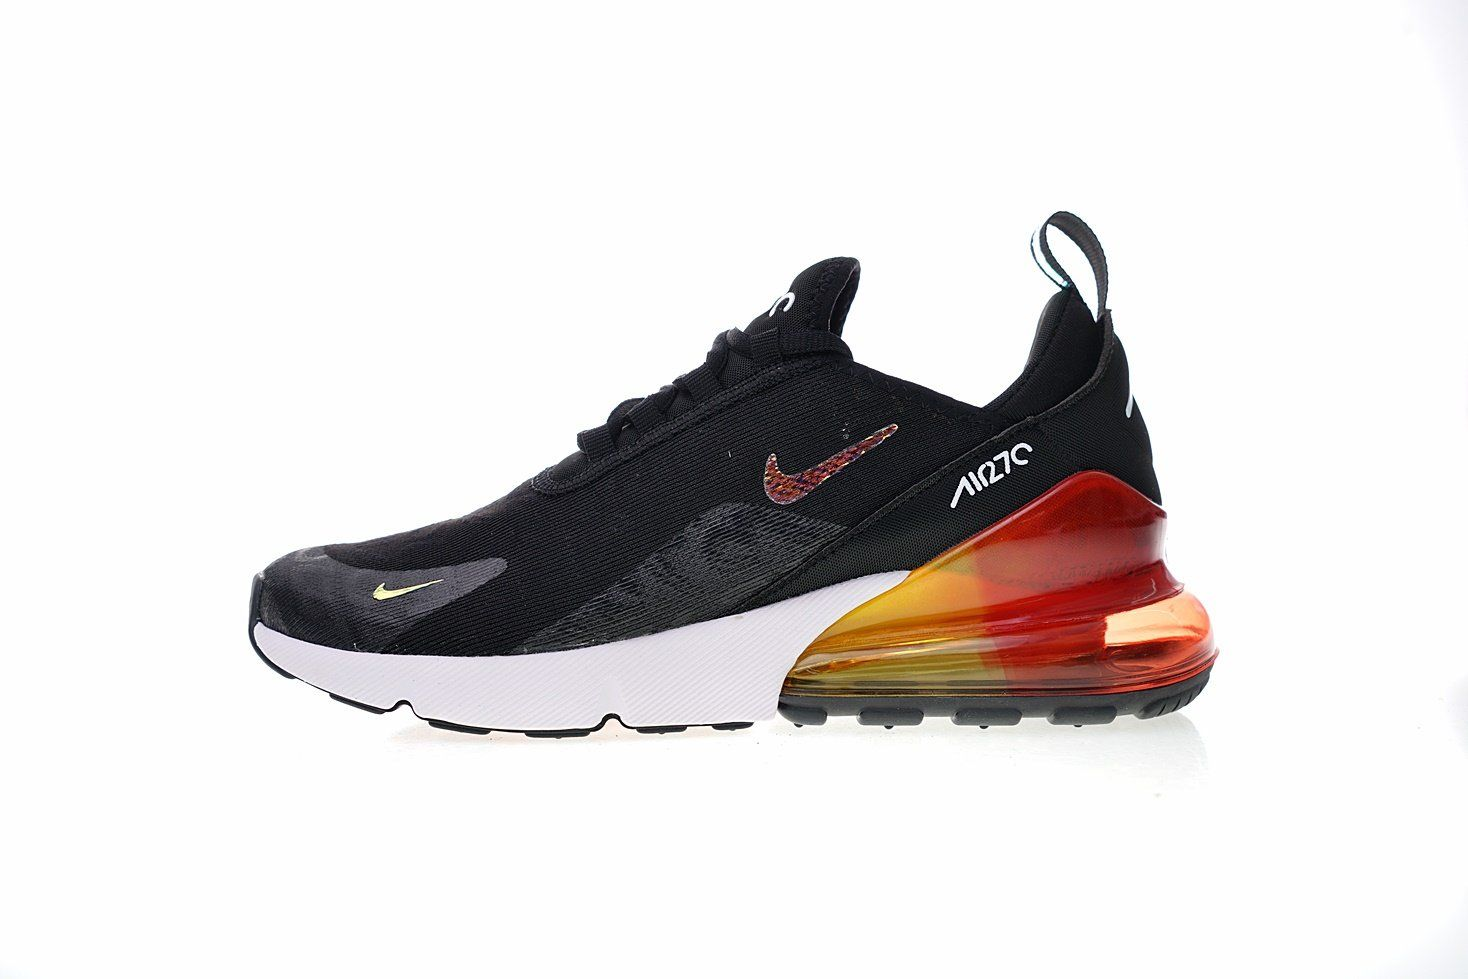 sale retailer 6de0e f804a Nike Air Max 270 Flyknit #AH6789-016 in 2019 | airmax shoes | Nike ...